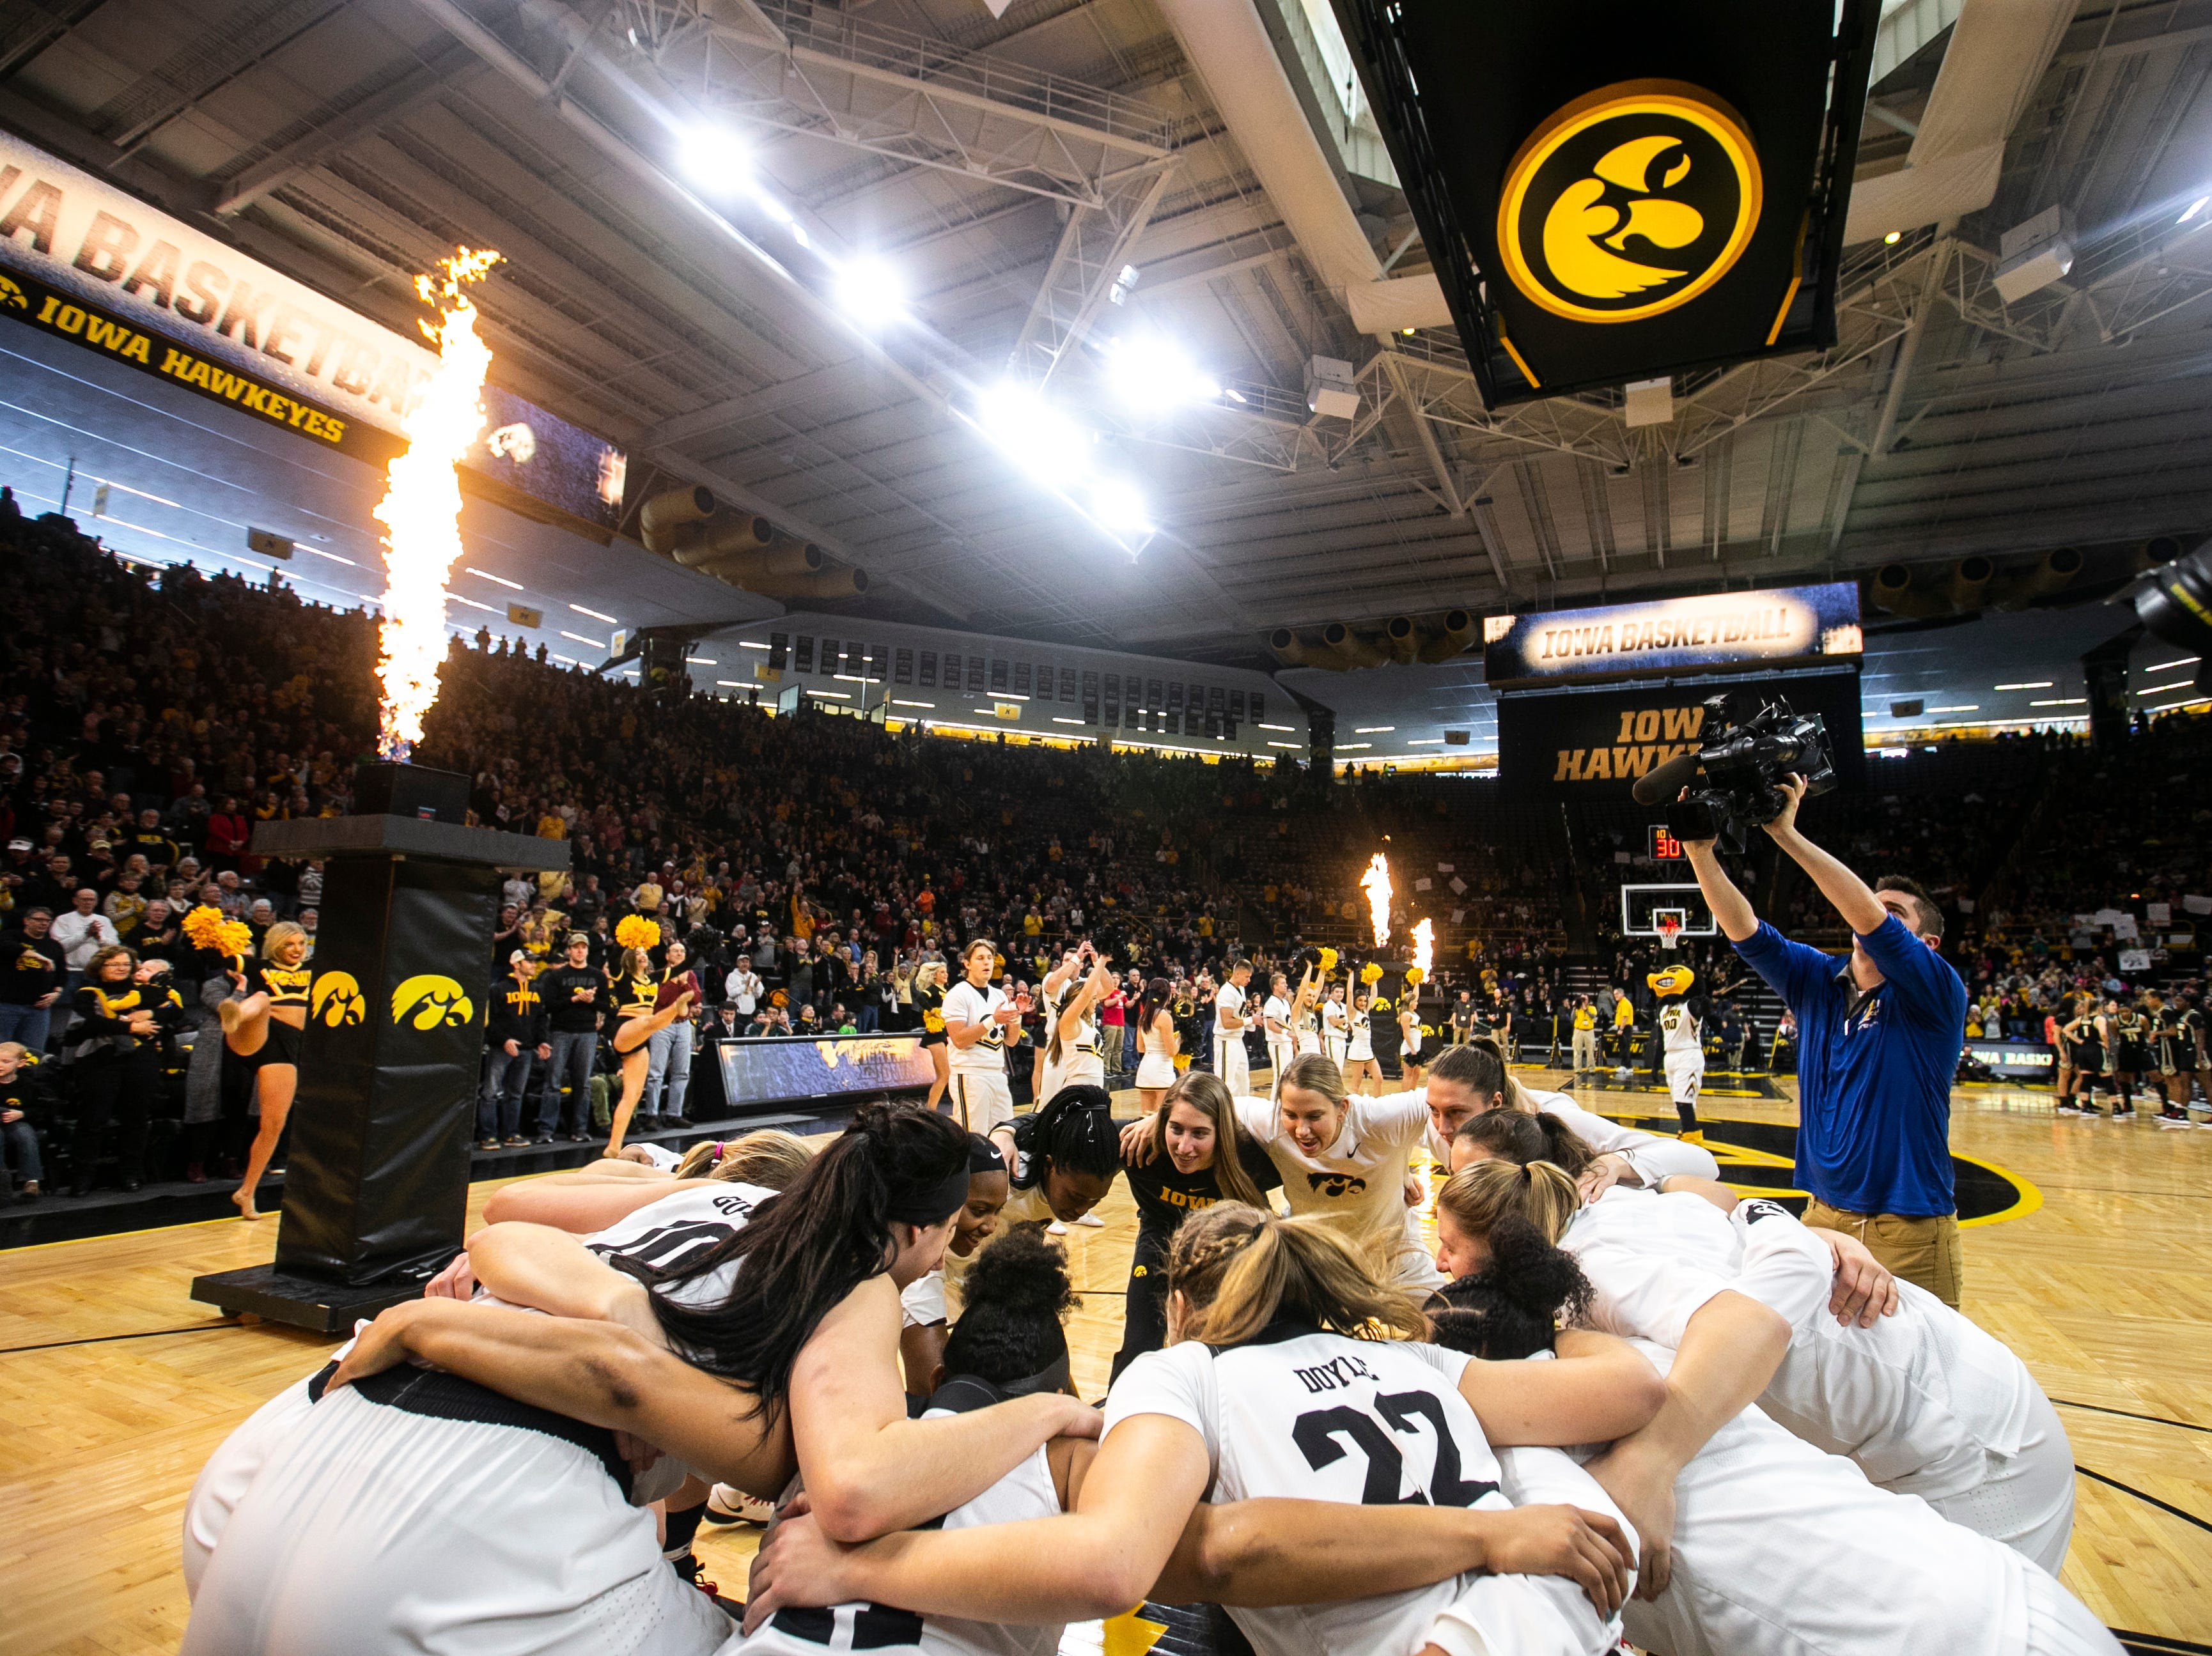 Iowa Hawkeyes huddle up during a NCAA Big Ten Conference women's basketball game on Sunday, Jan. 27, 2019, at Carver-Hawkeye Arena in Iowa City, Iowa.